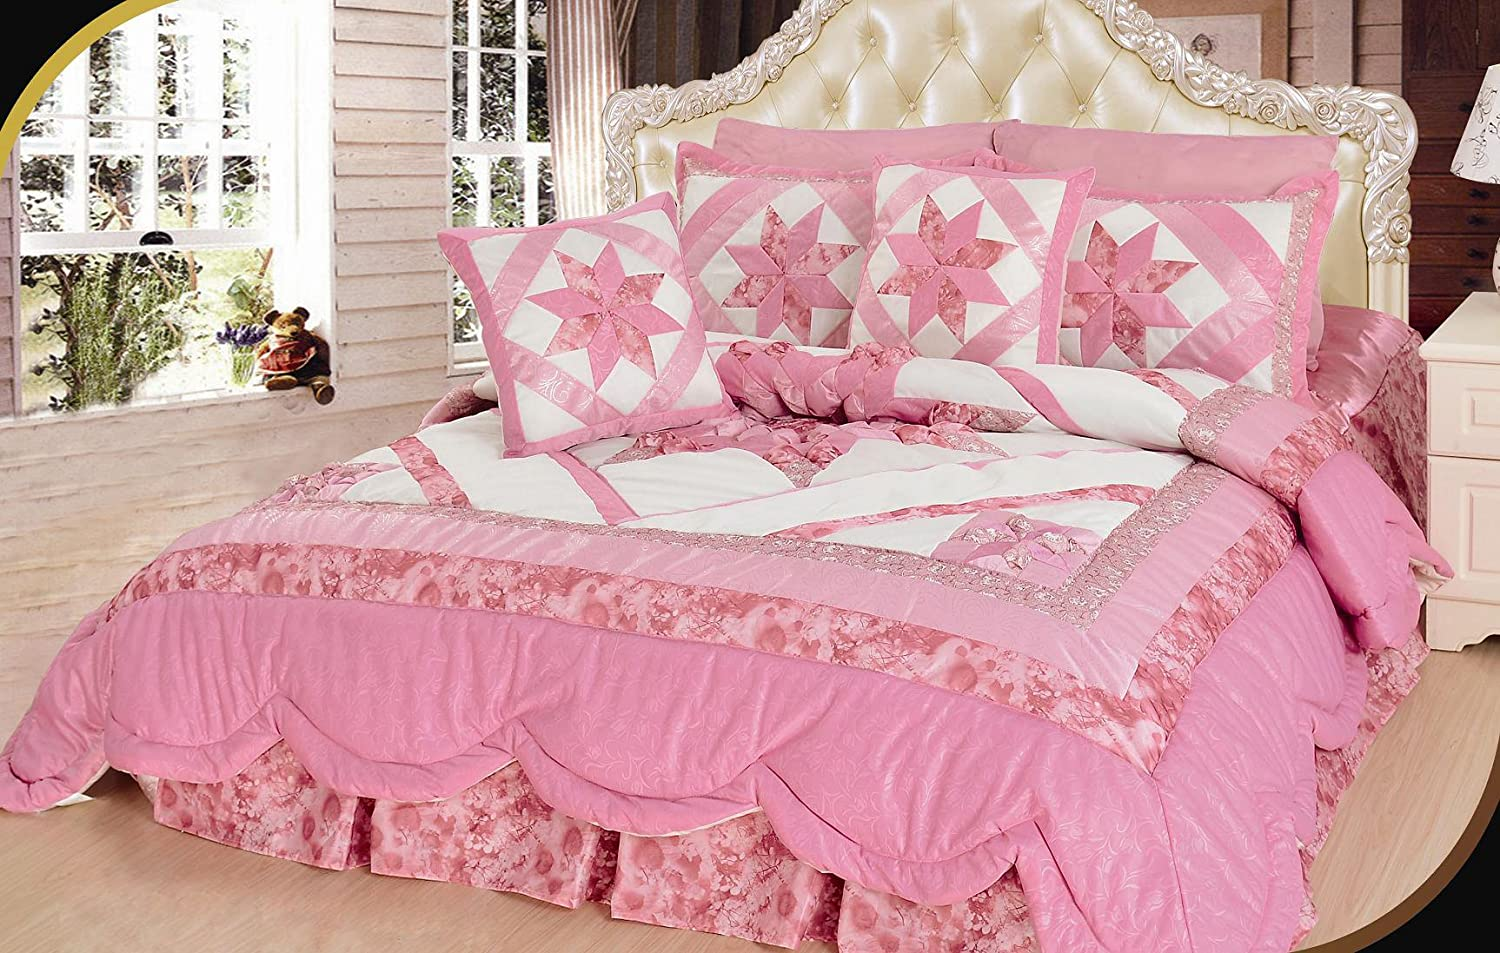 New Girly Girl 5-Piece Quilt Set, Patchwork, Pink